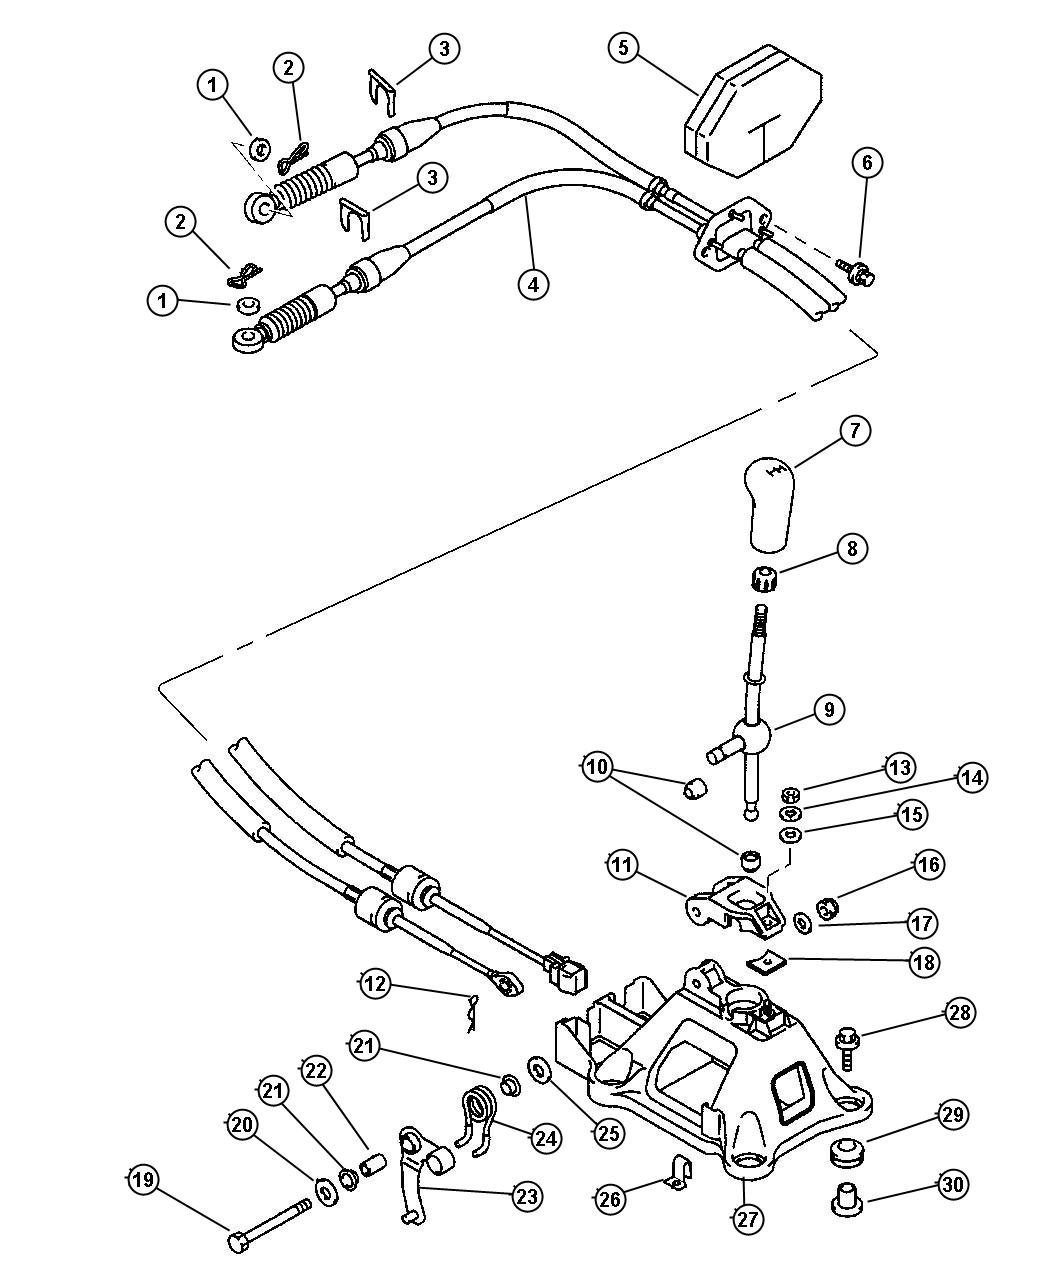 Mopar Lower Insulator 55365038ac moreover How To Install Shifter Mechanism 2001 Chrysler Sebring besides 2002 Chrysler 300m Climate Control Wiring Harness Diagram as well 1989 Buick Reatta Fuel Pump Wiring Diagrams together with Front Suspension Diagram. on chrysler 300m club